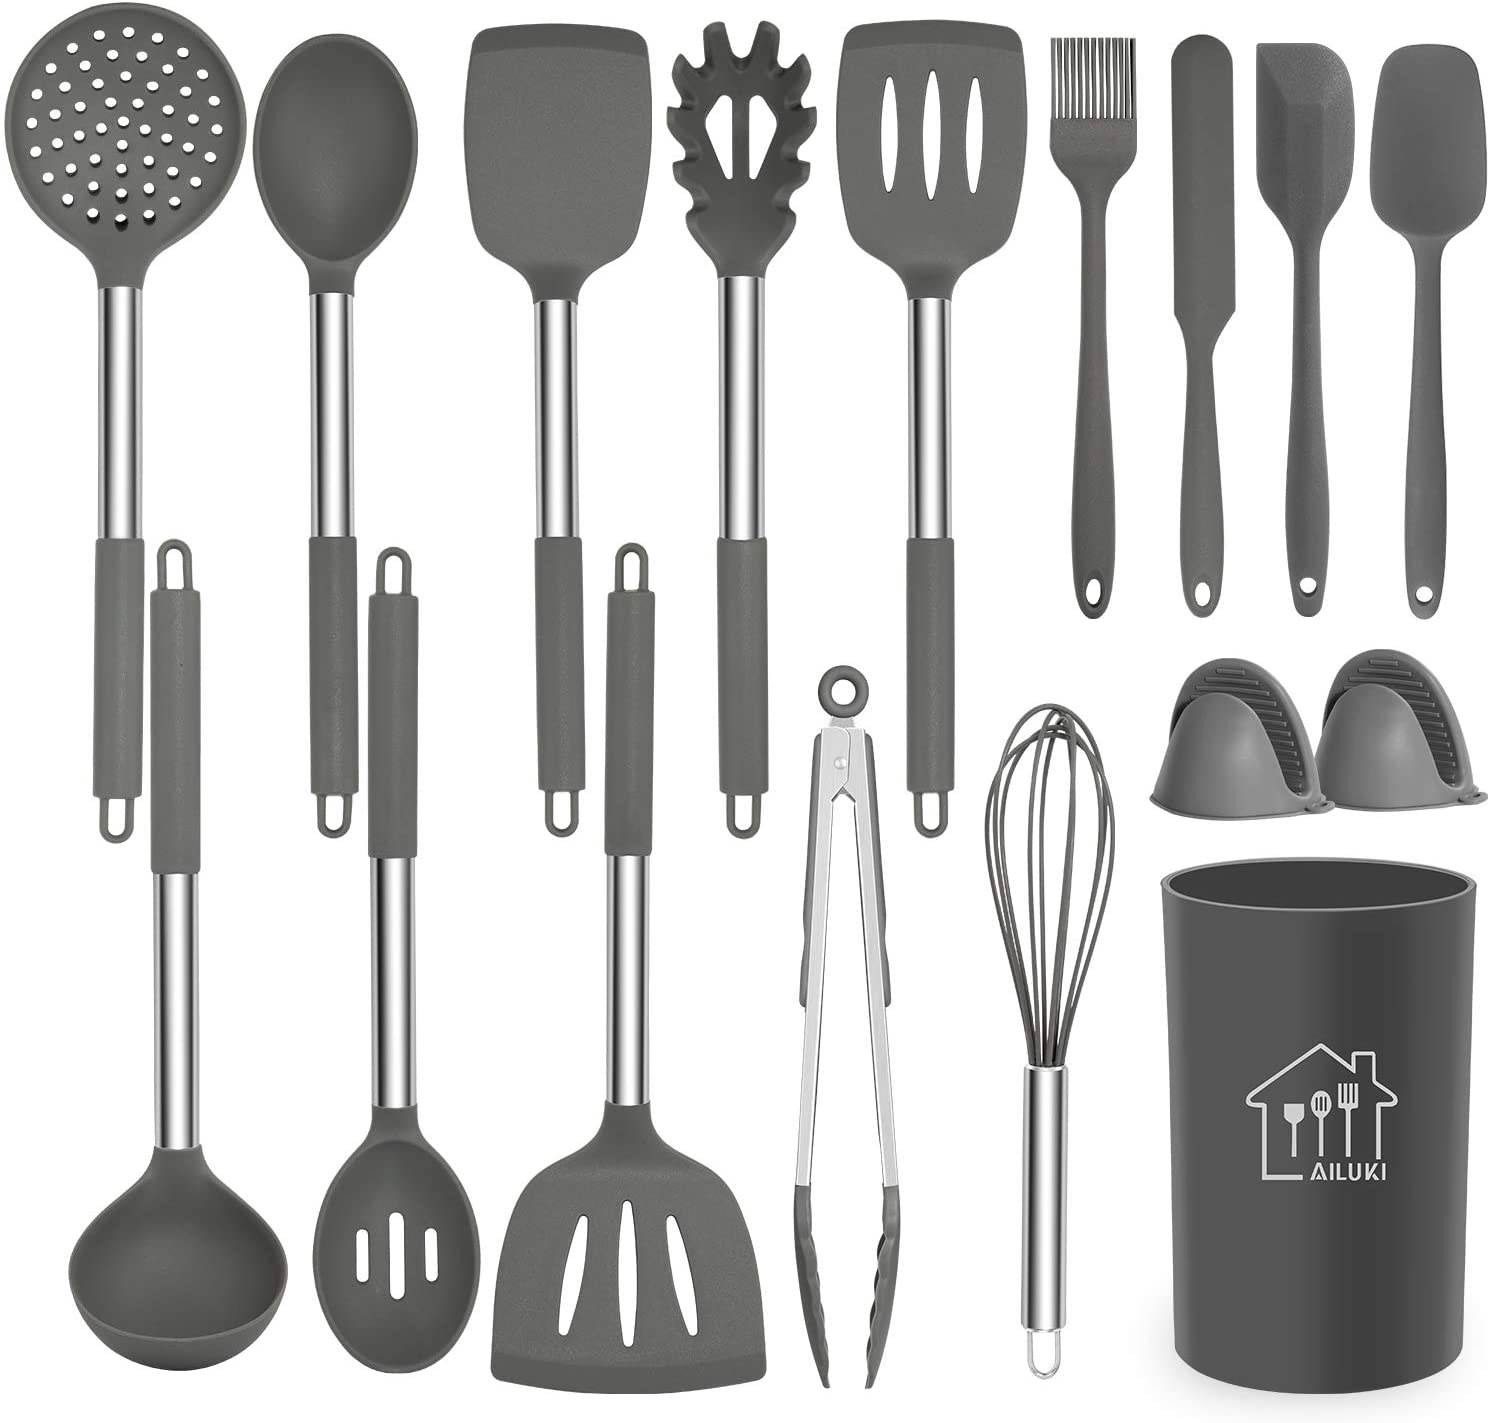 A 17-piece cooking utensil set, in light gray and stainless steel.